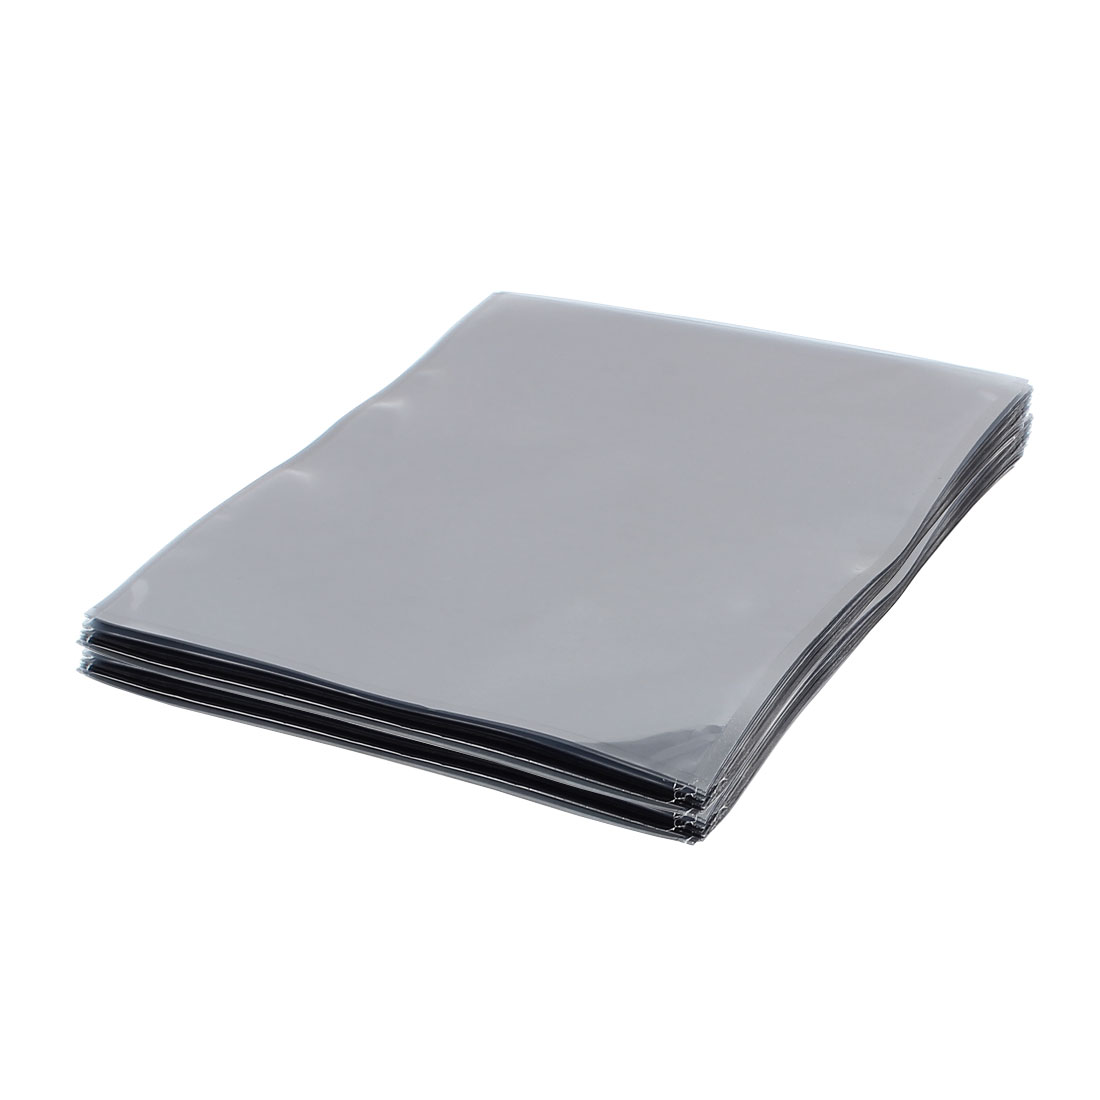 100 Pcs 300mm x 400mm Silver Tone Flat Open Top Anti Static Bag For Electronics